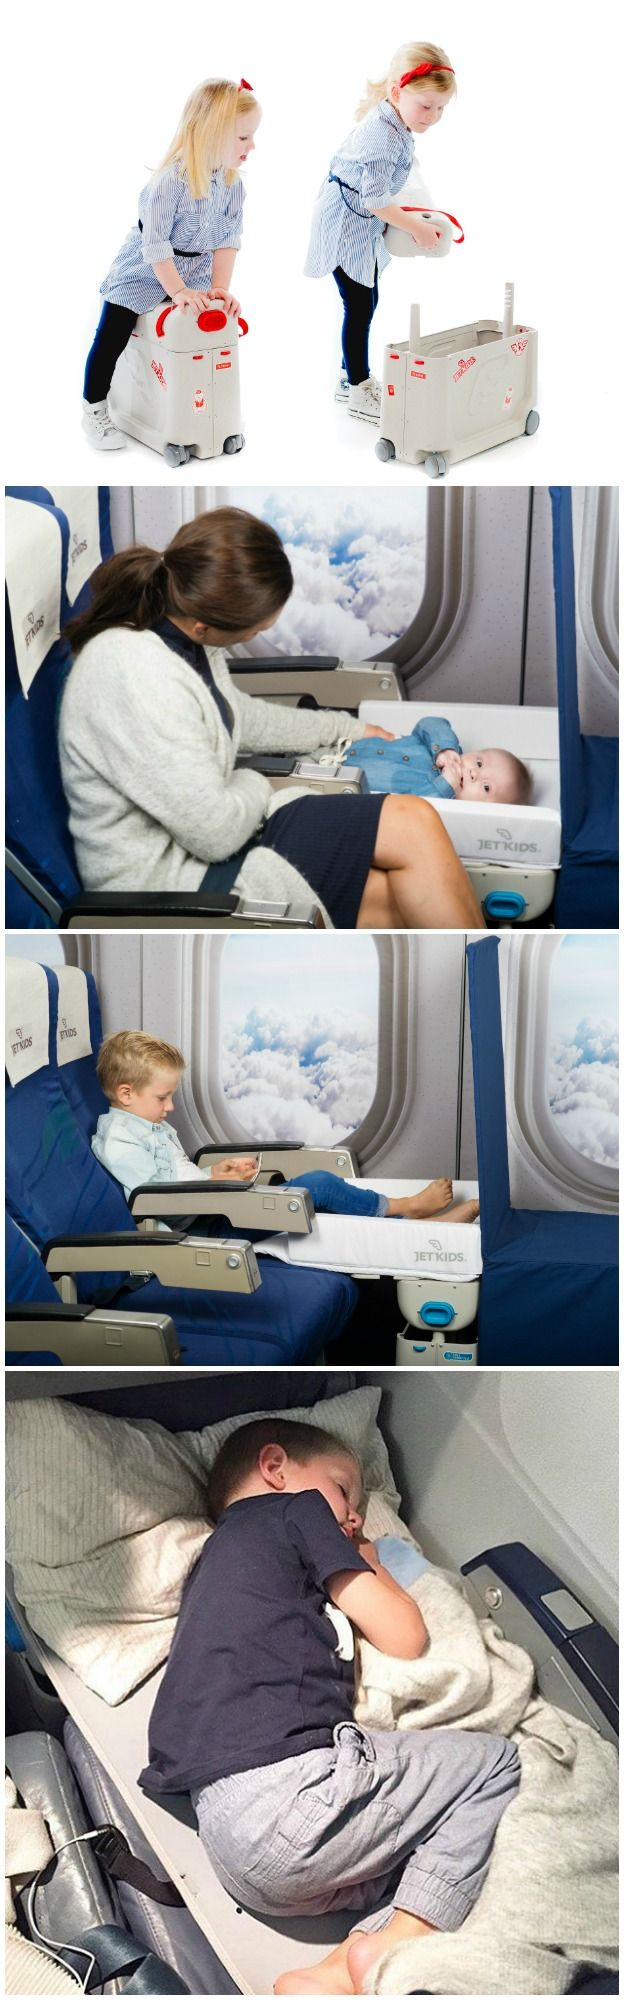 Baby bed zomer - Bedbox From Ride On Suitcase To Inflight Bed